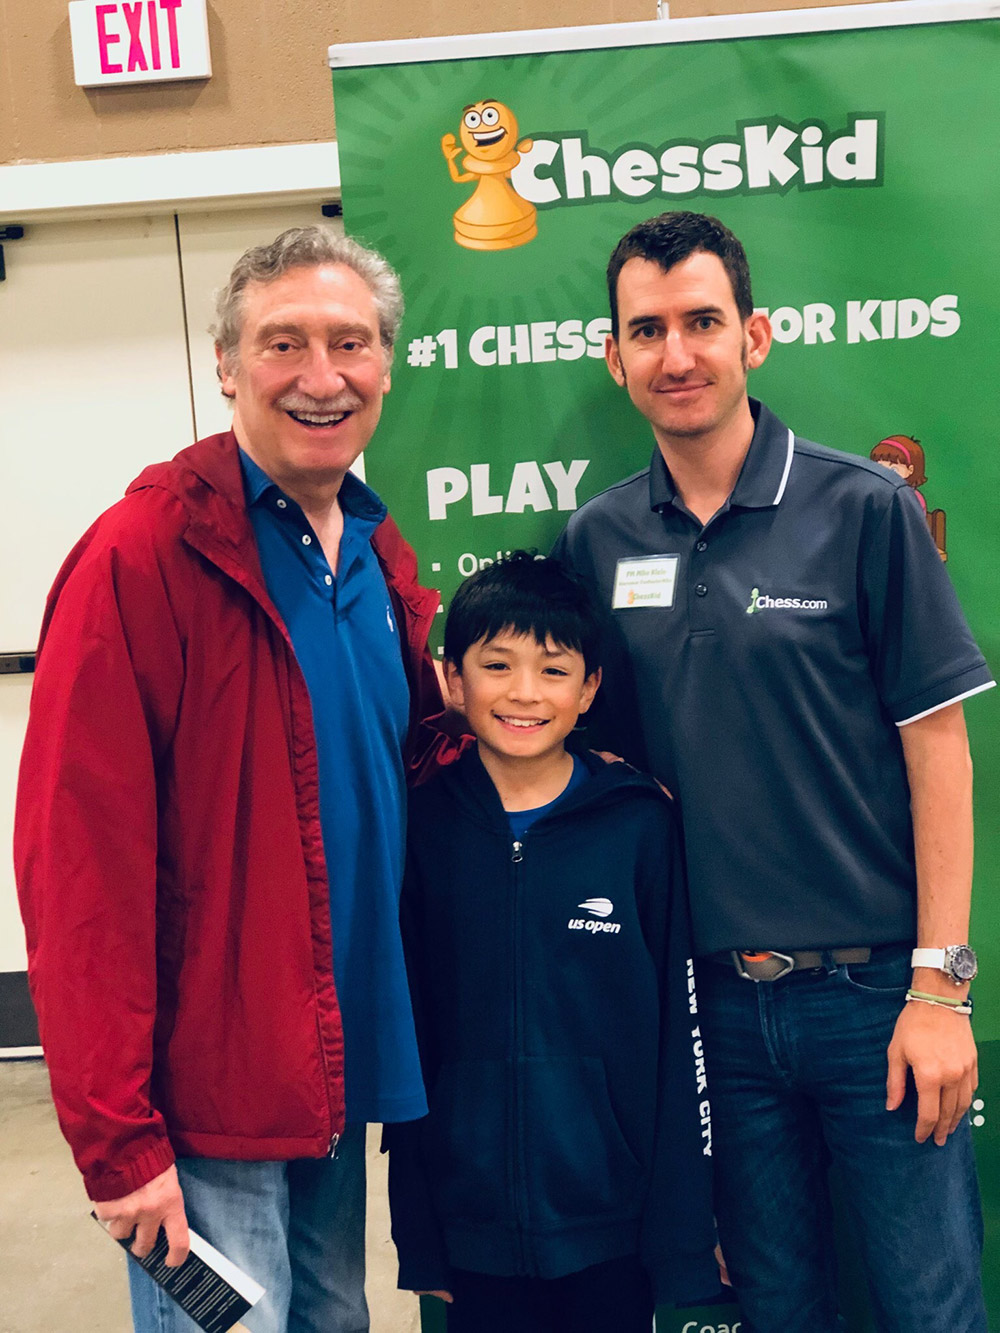 Oliver takes a break between chess rounds, with NM Bruce Pandolfini (left) and FM Mike Klein (right) at the 2019 National Elementary (K-6) Championships, held at the Gaylord Opryland Resort and Convention Center in Nashville. May, 2019